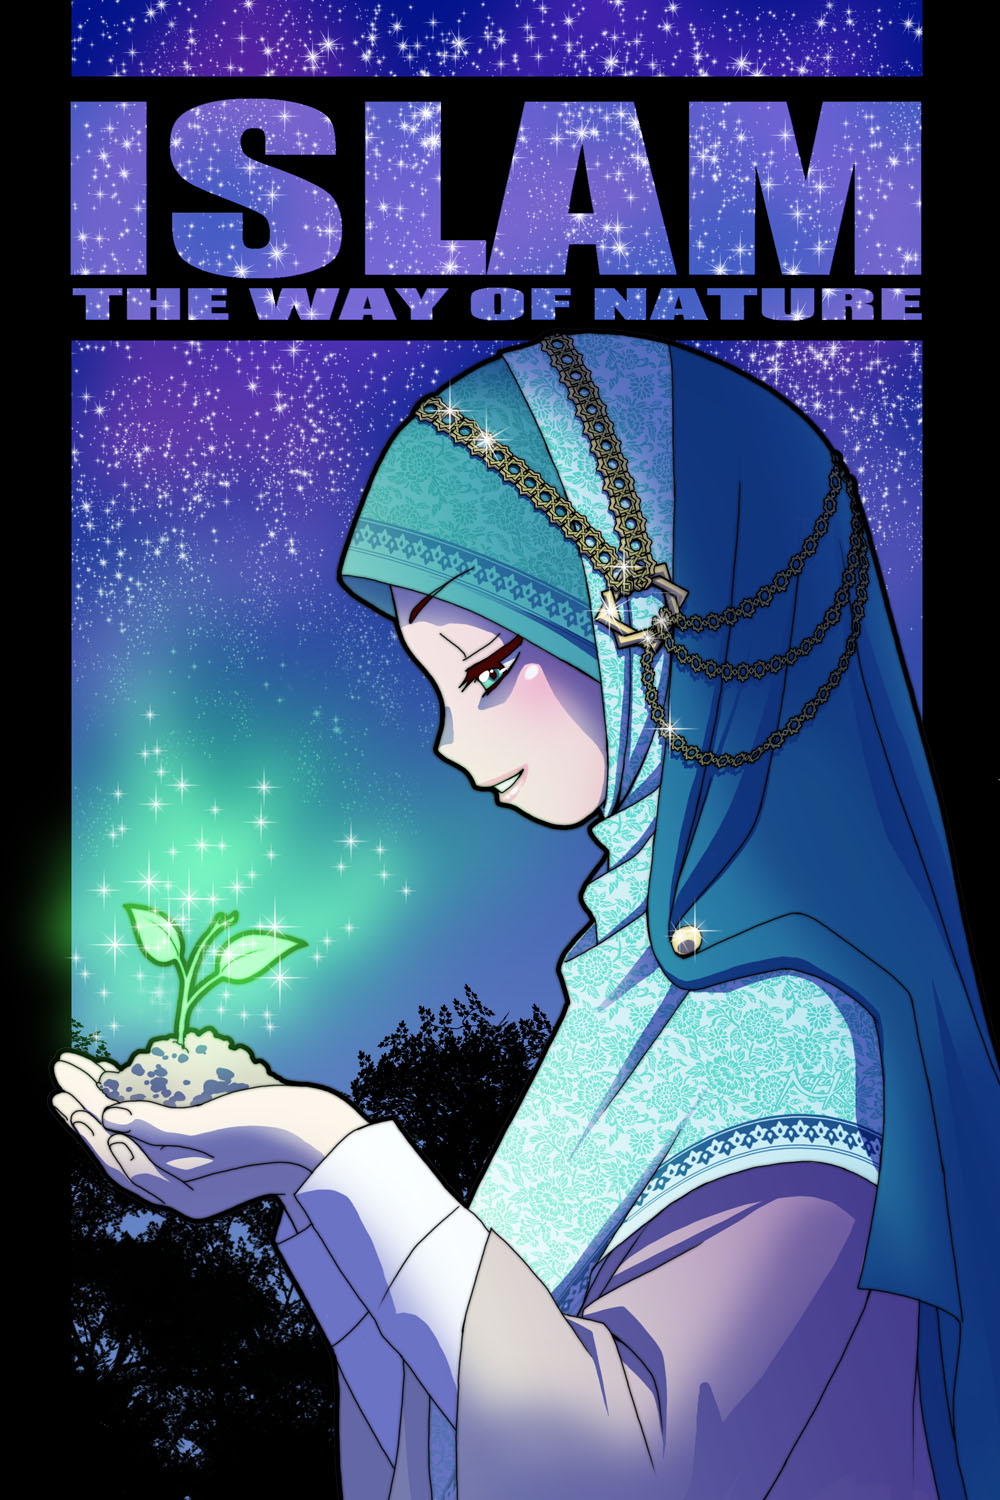 Islam, the way of nature by Nayzak on DeviantArt